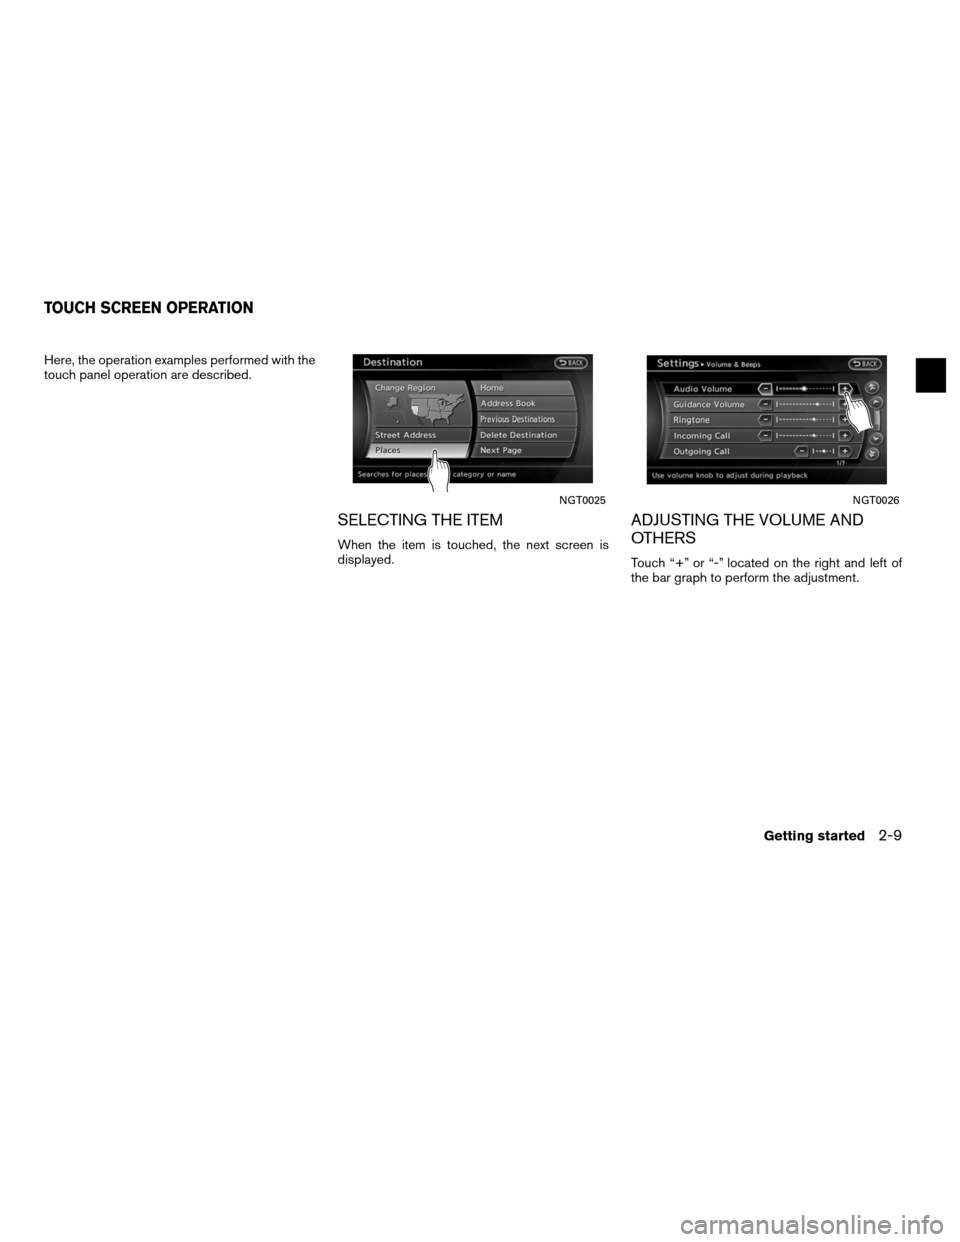 NISSAN ALTIMA COUPE 2012 D32 / 4.G Navigation Manual, Page 17